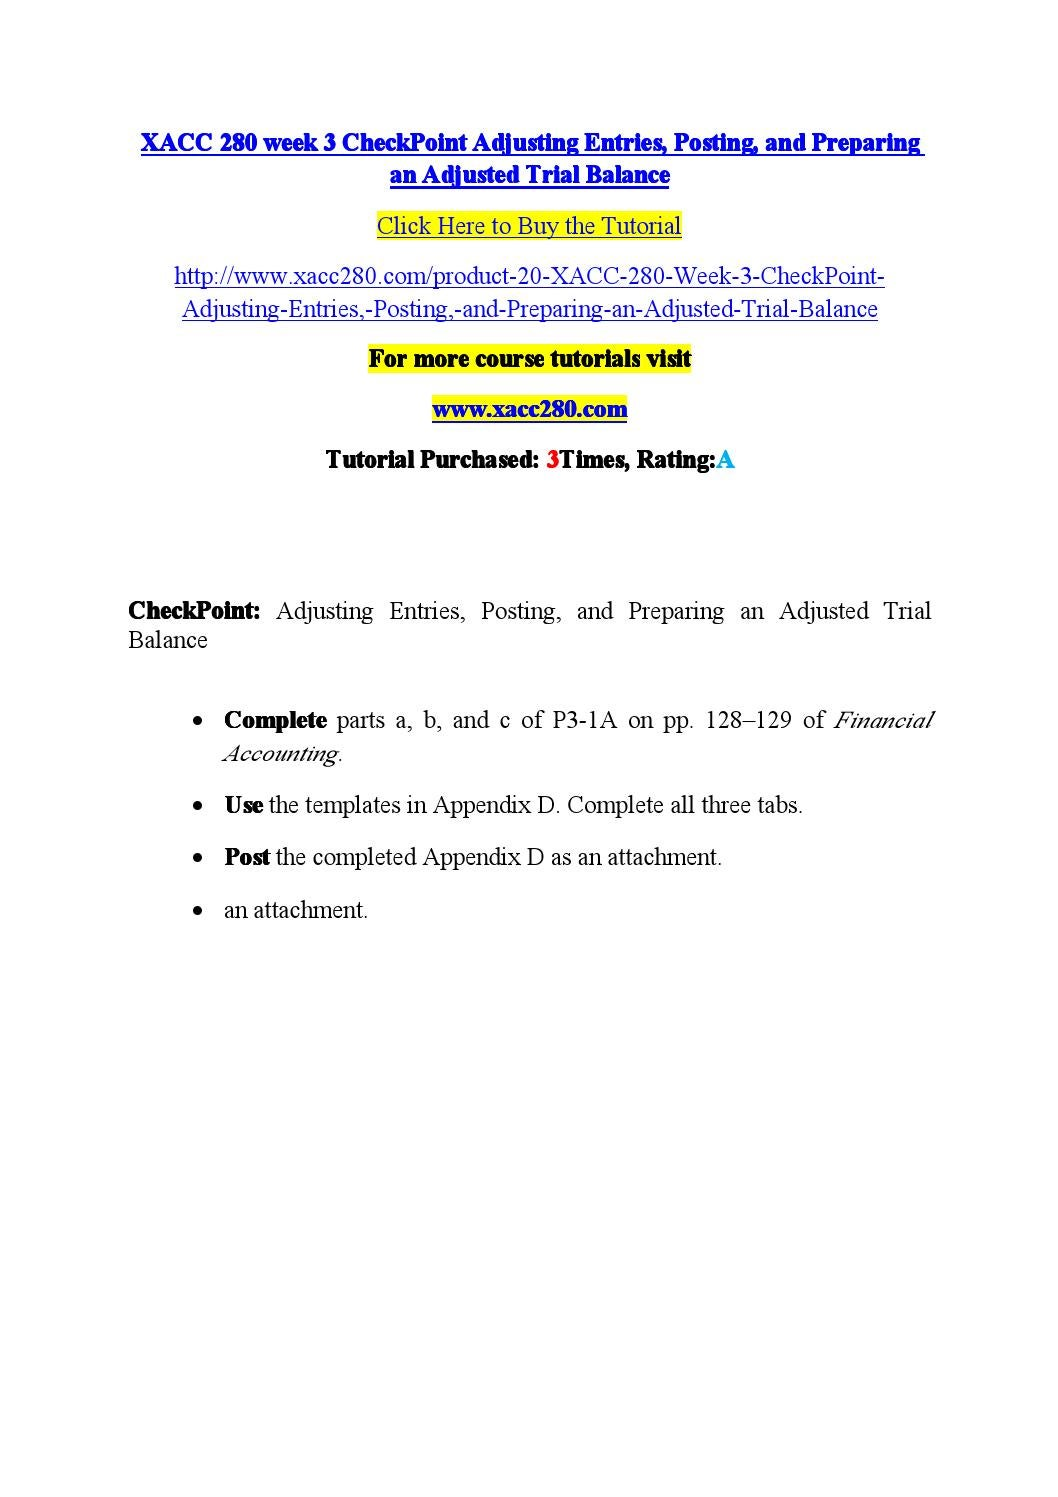 Xacc 280 week 3 checkpoint adjusting entries, posting, and